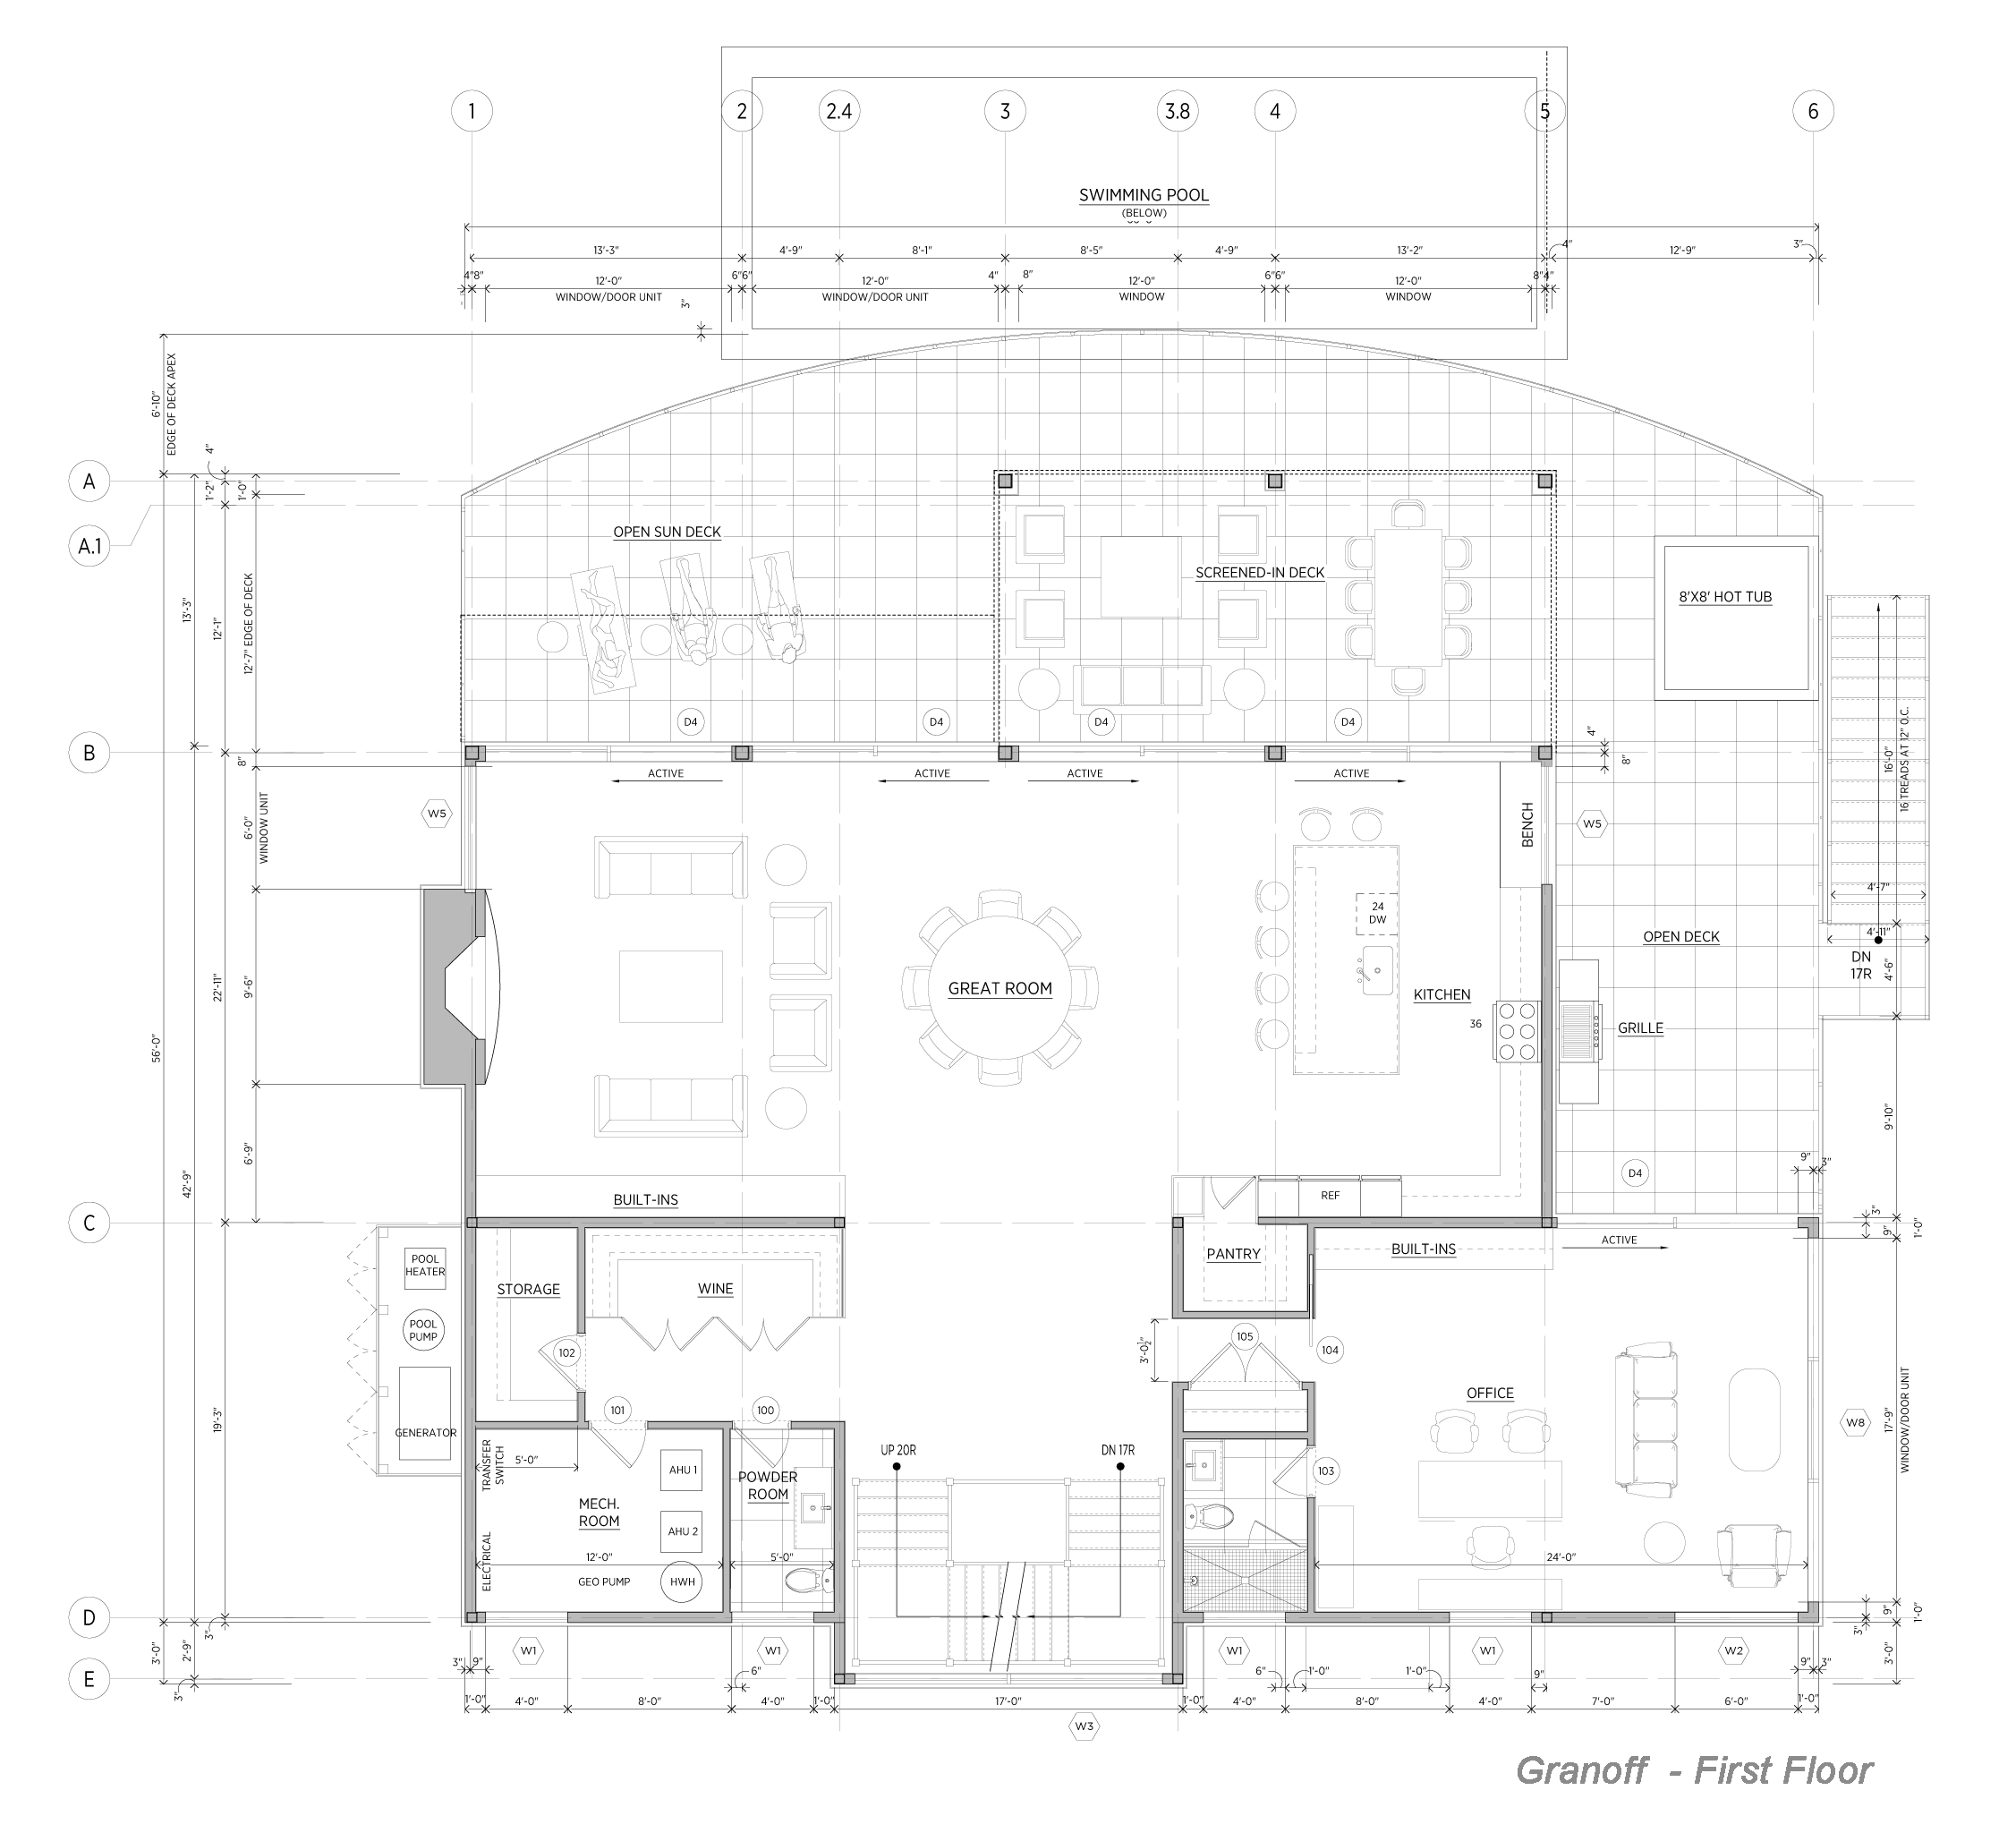 Plans-2 (flattened).png